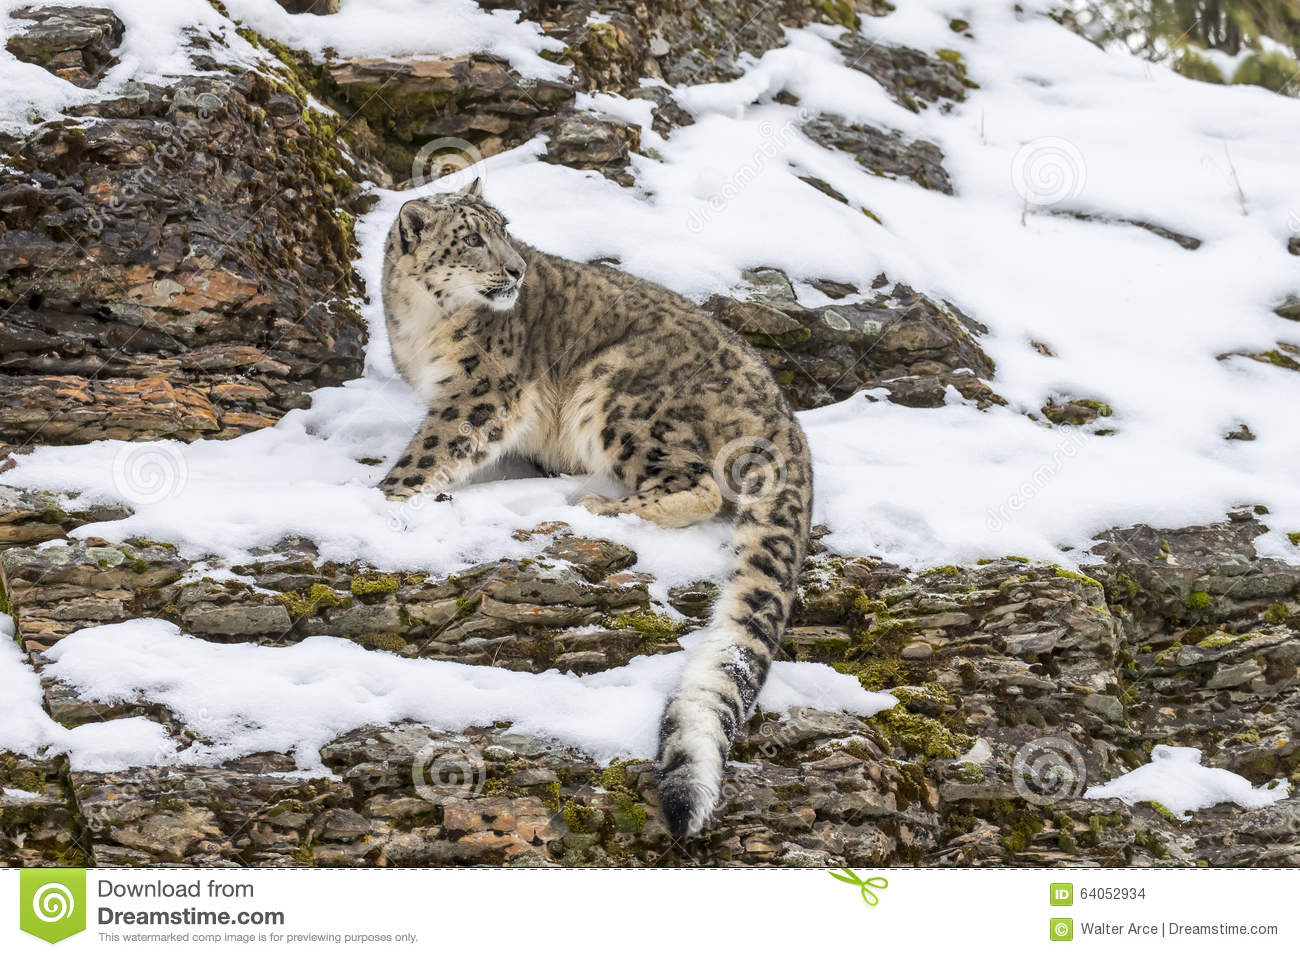 Snow leopard hunting prey - photo#26